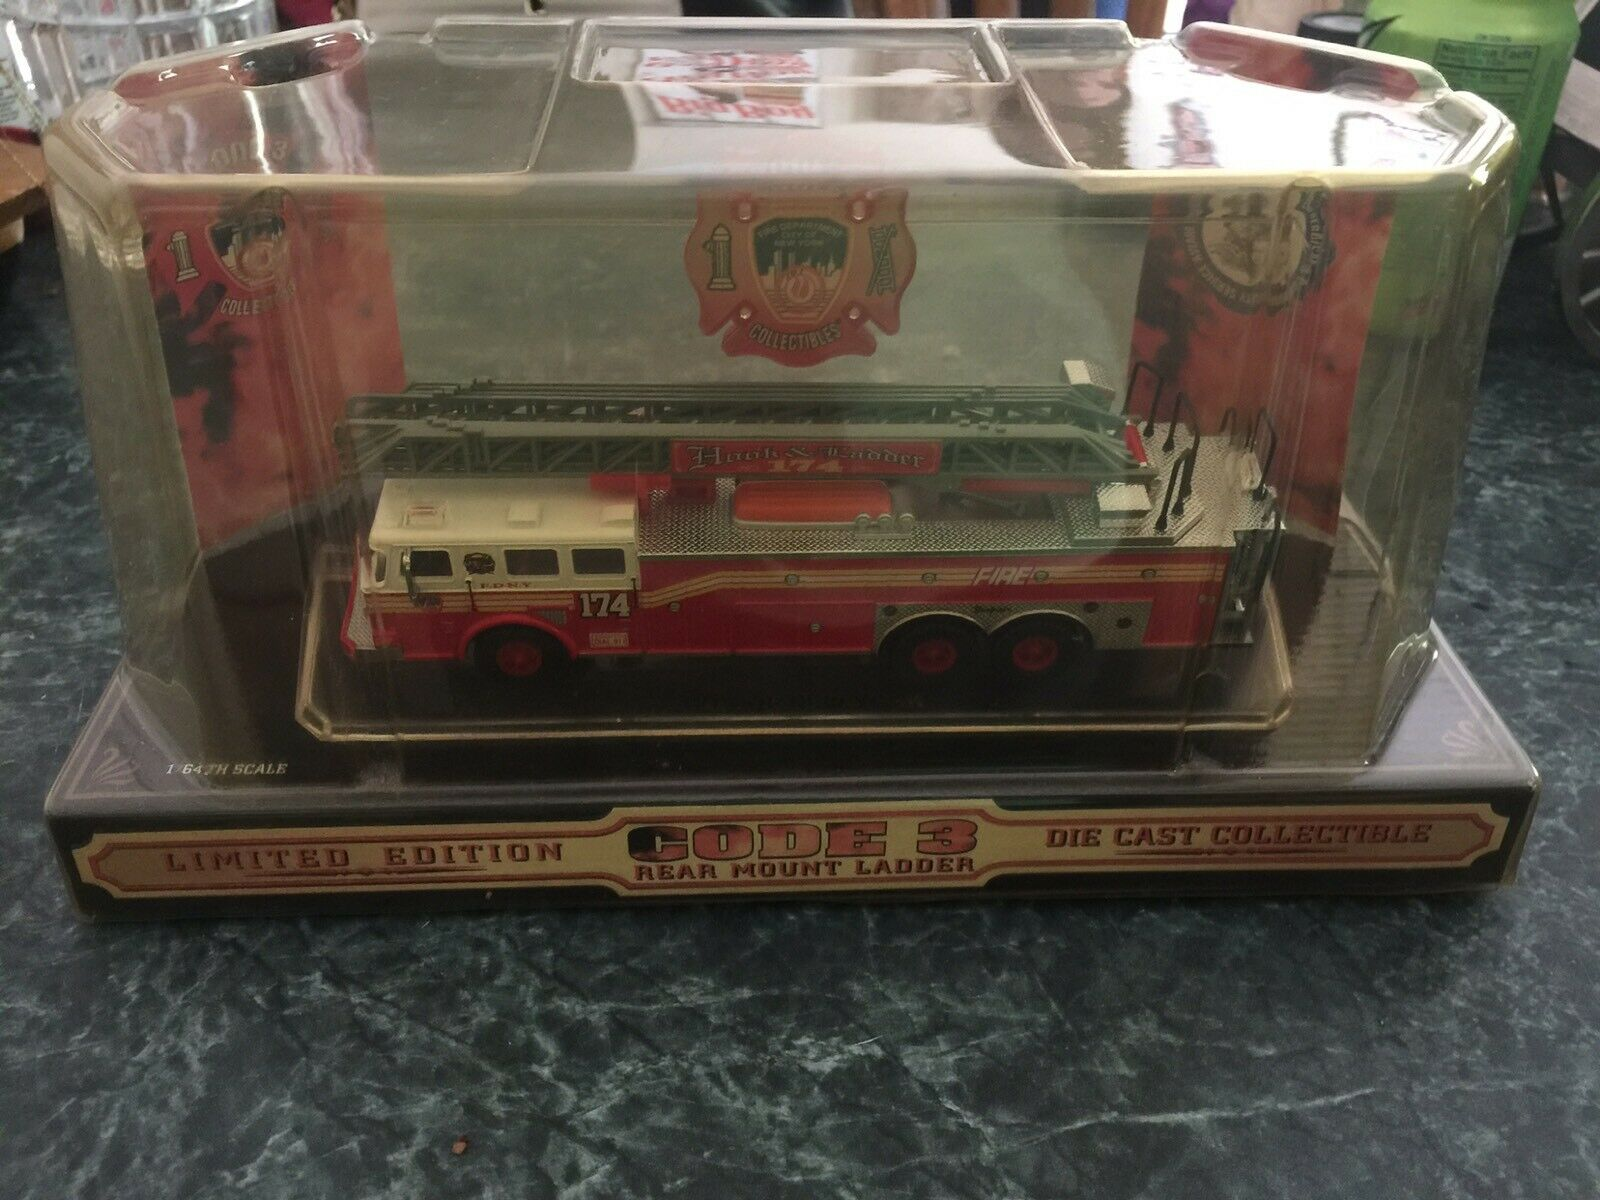 Code 3 FDNY Rear Mount Ladder 12721 Engine   174 1 0f 4000 1 64 scale